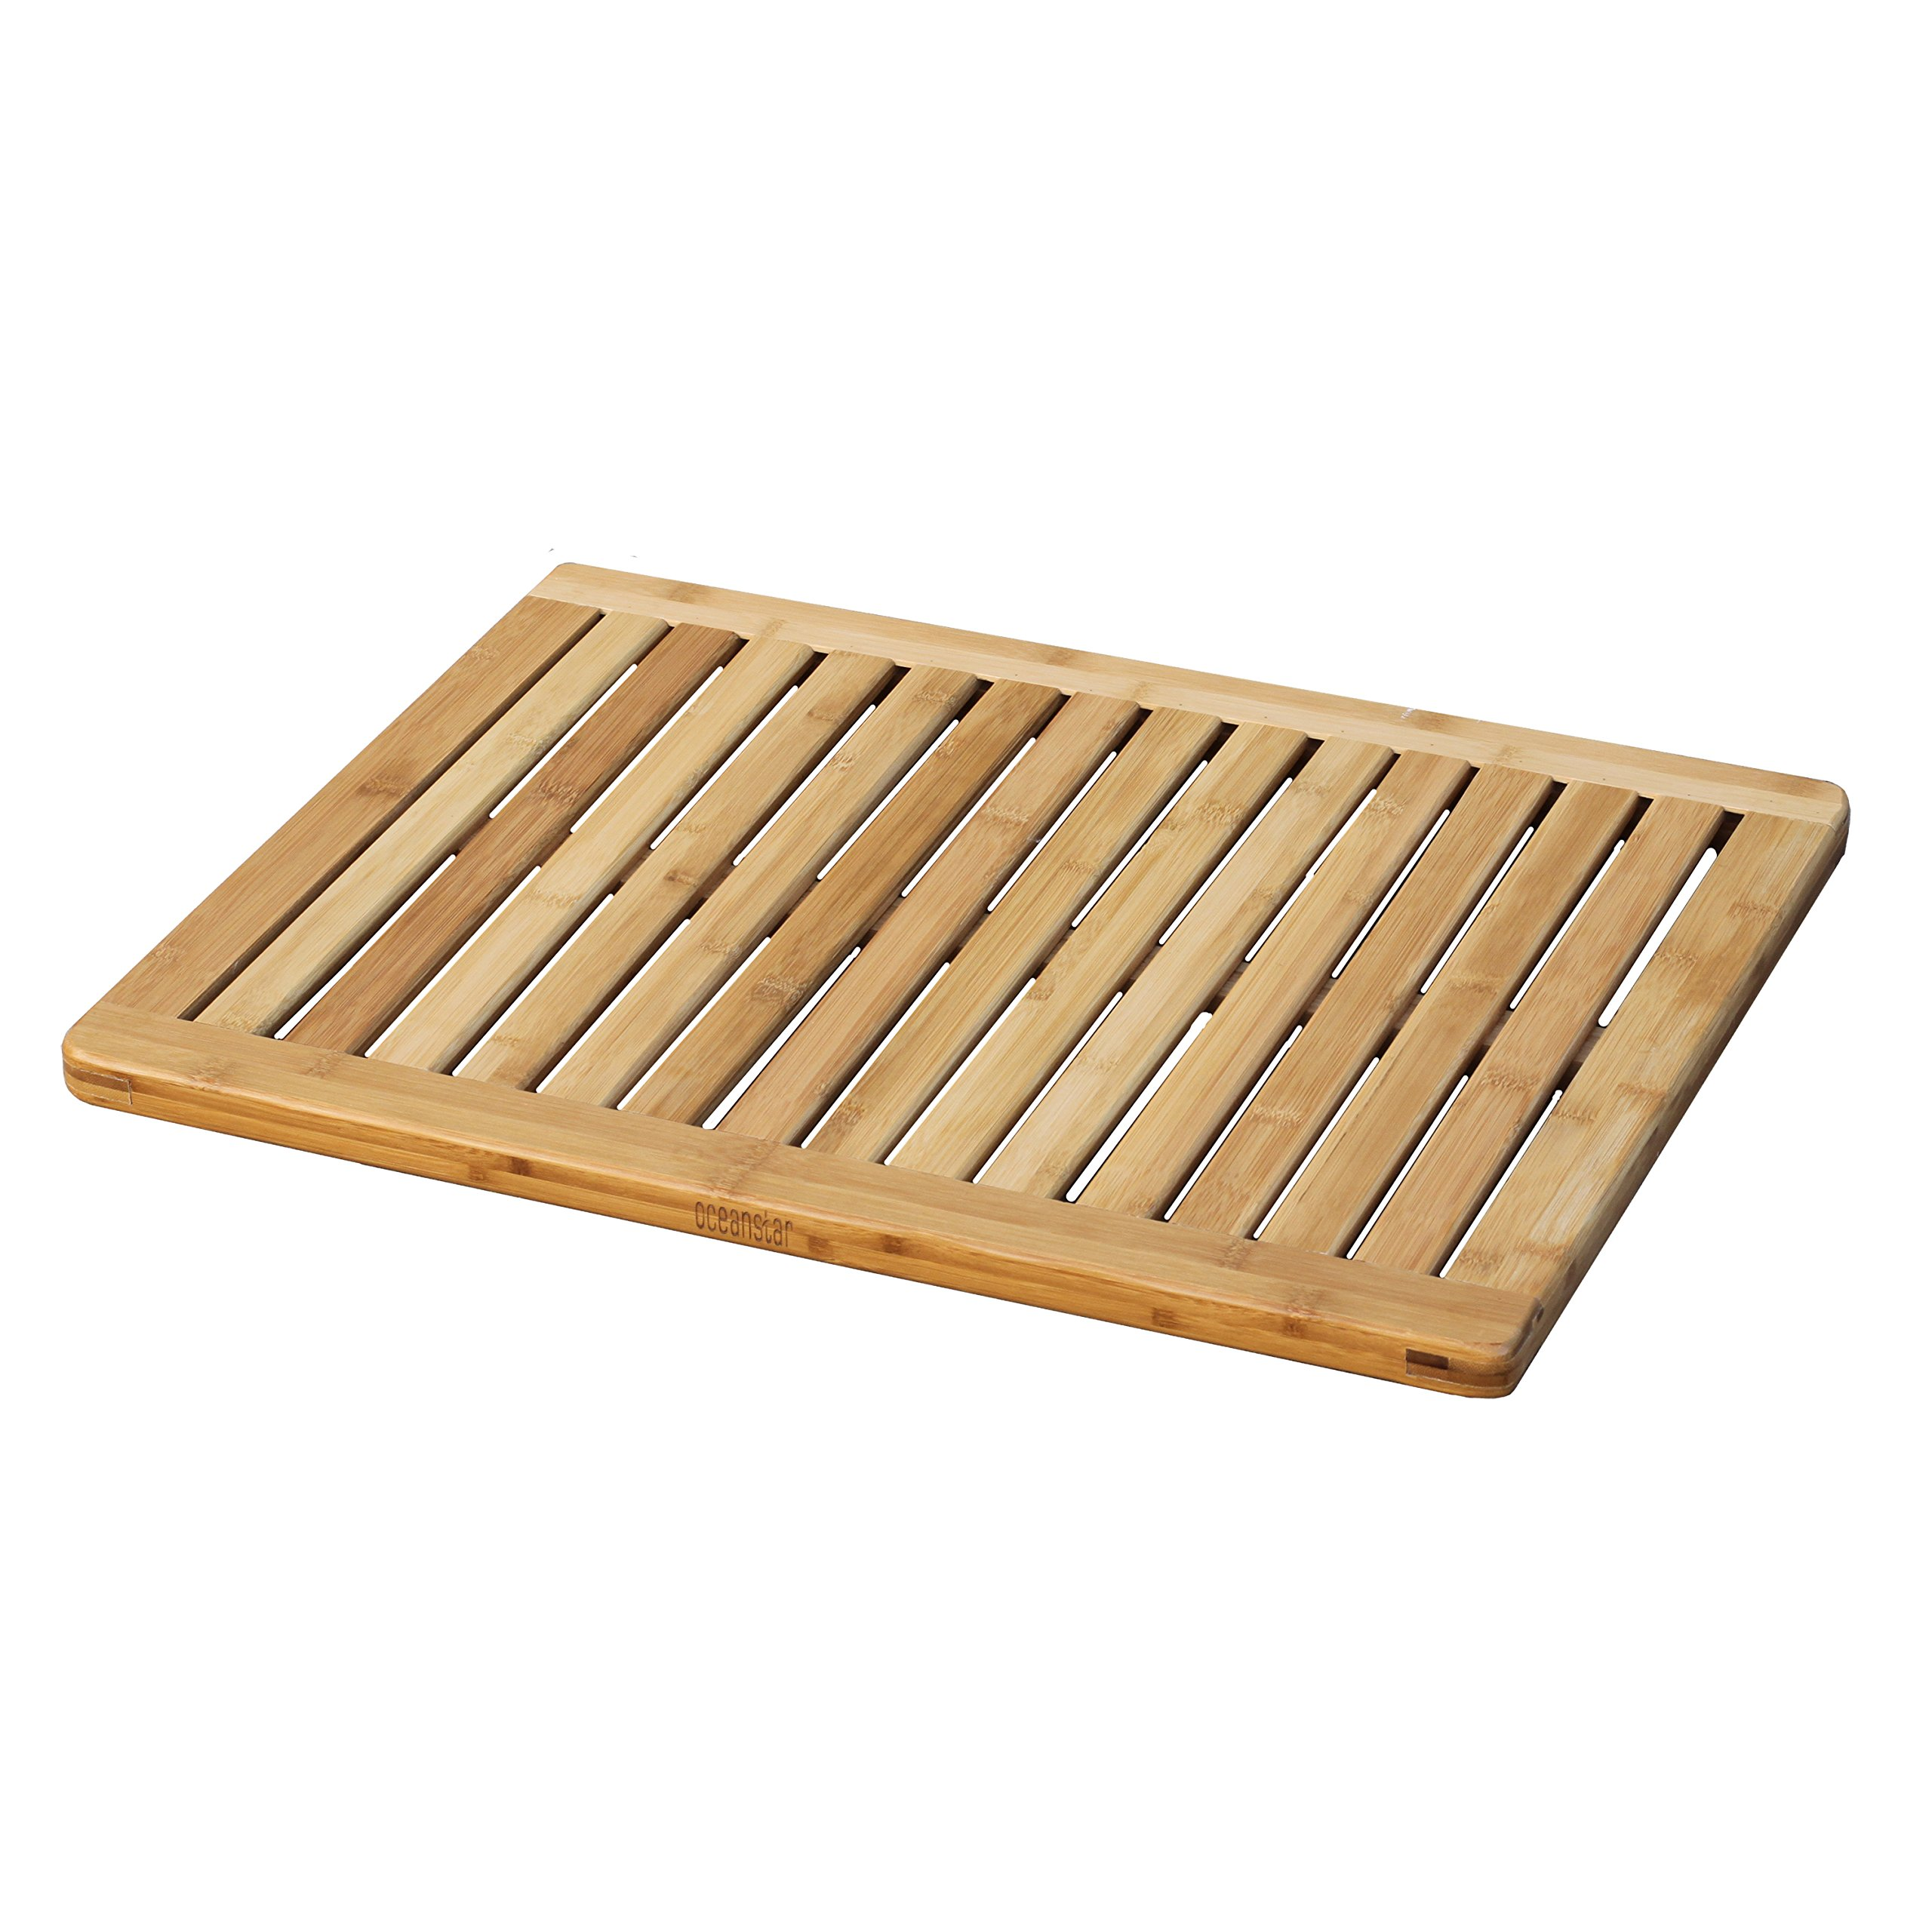 Oceanstar FM1163 Bamboo Floor and Shower Mat